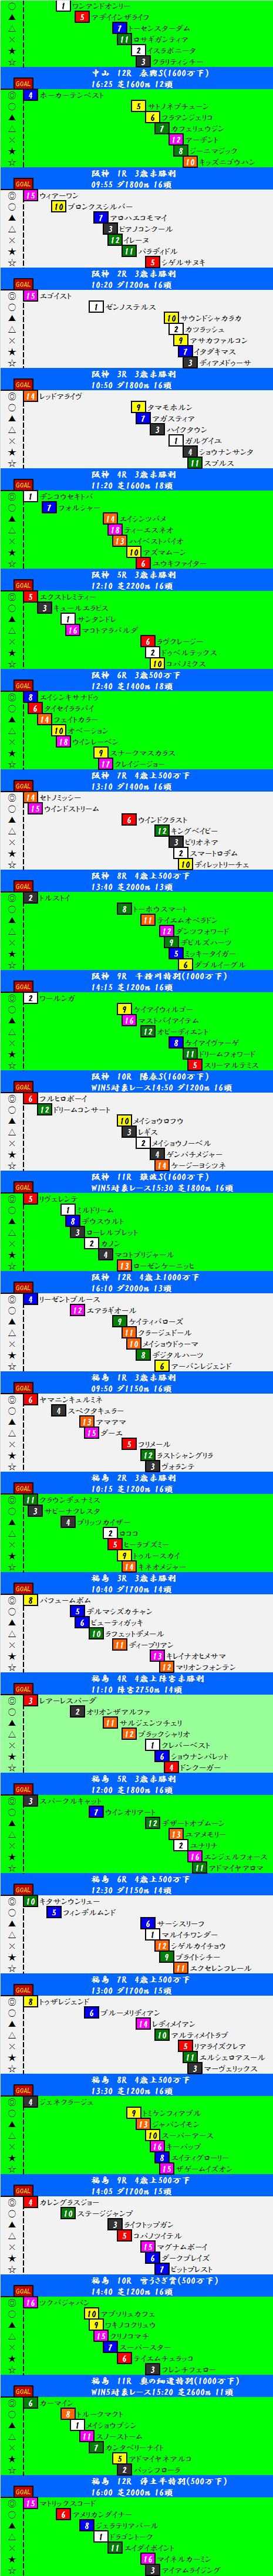 201404202.png